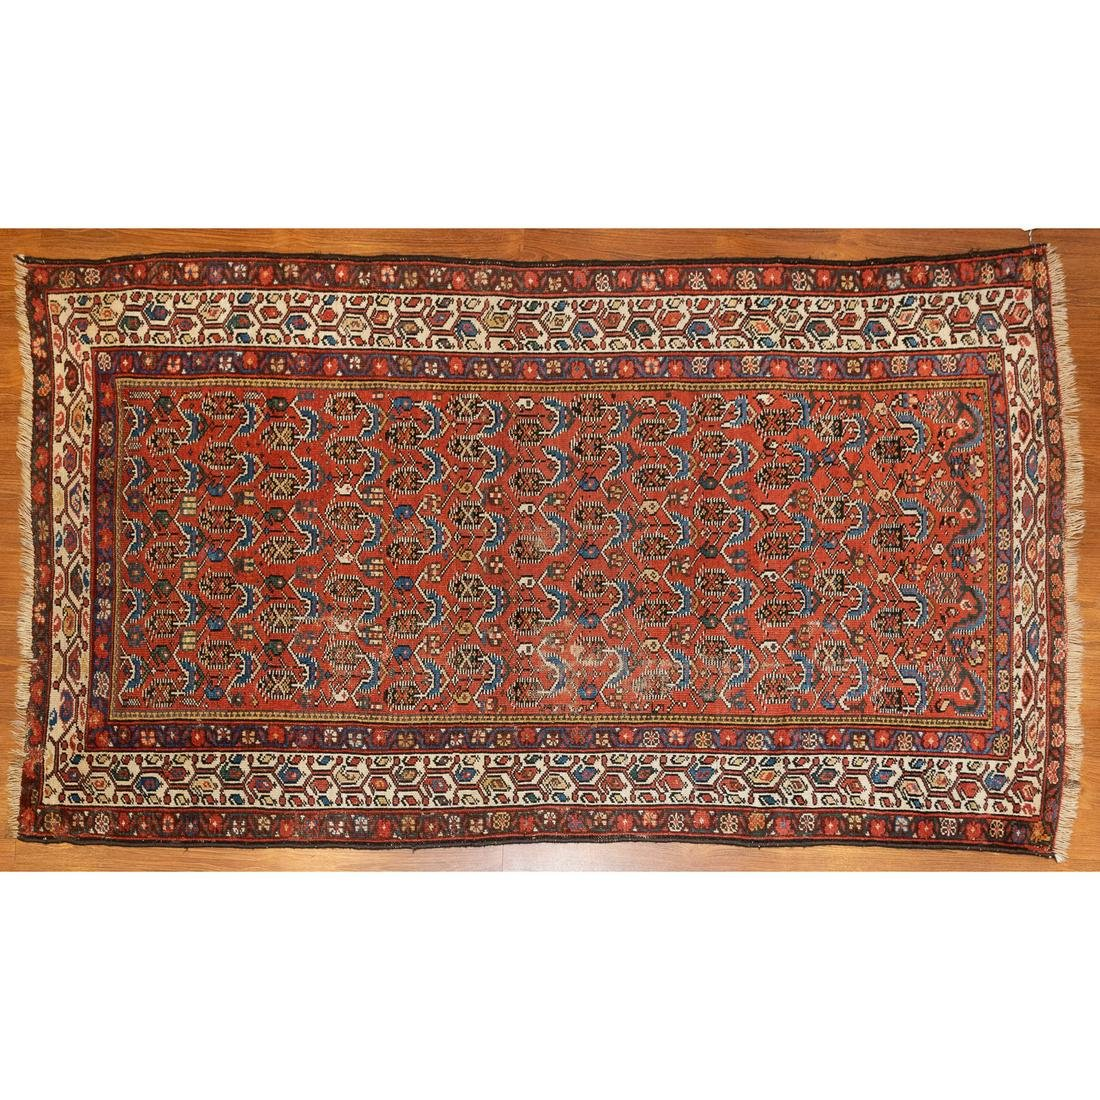 Antique Shirvan Rug, Caucasus, 3.6 x 6.6